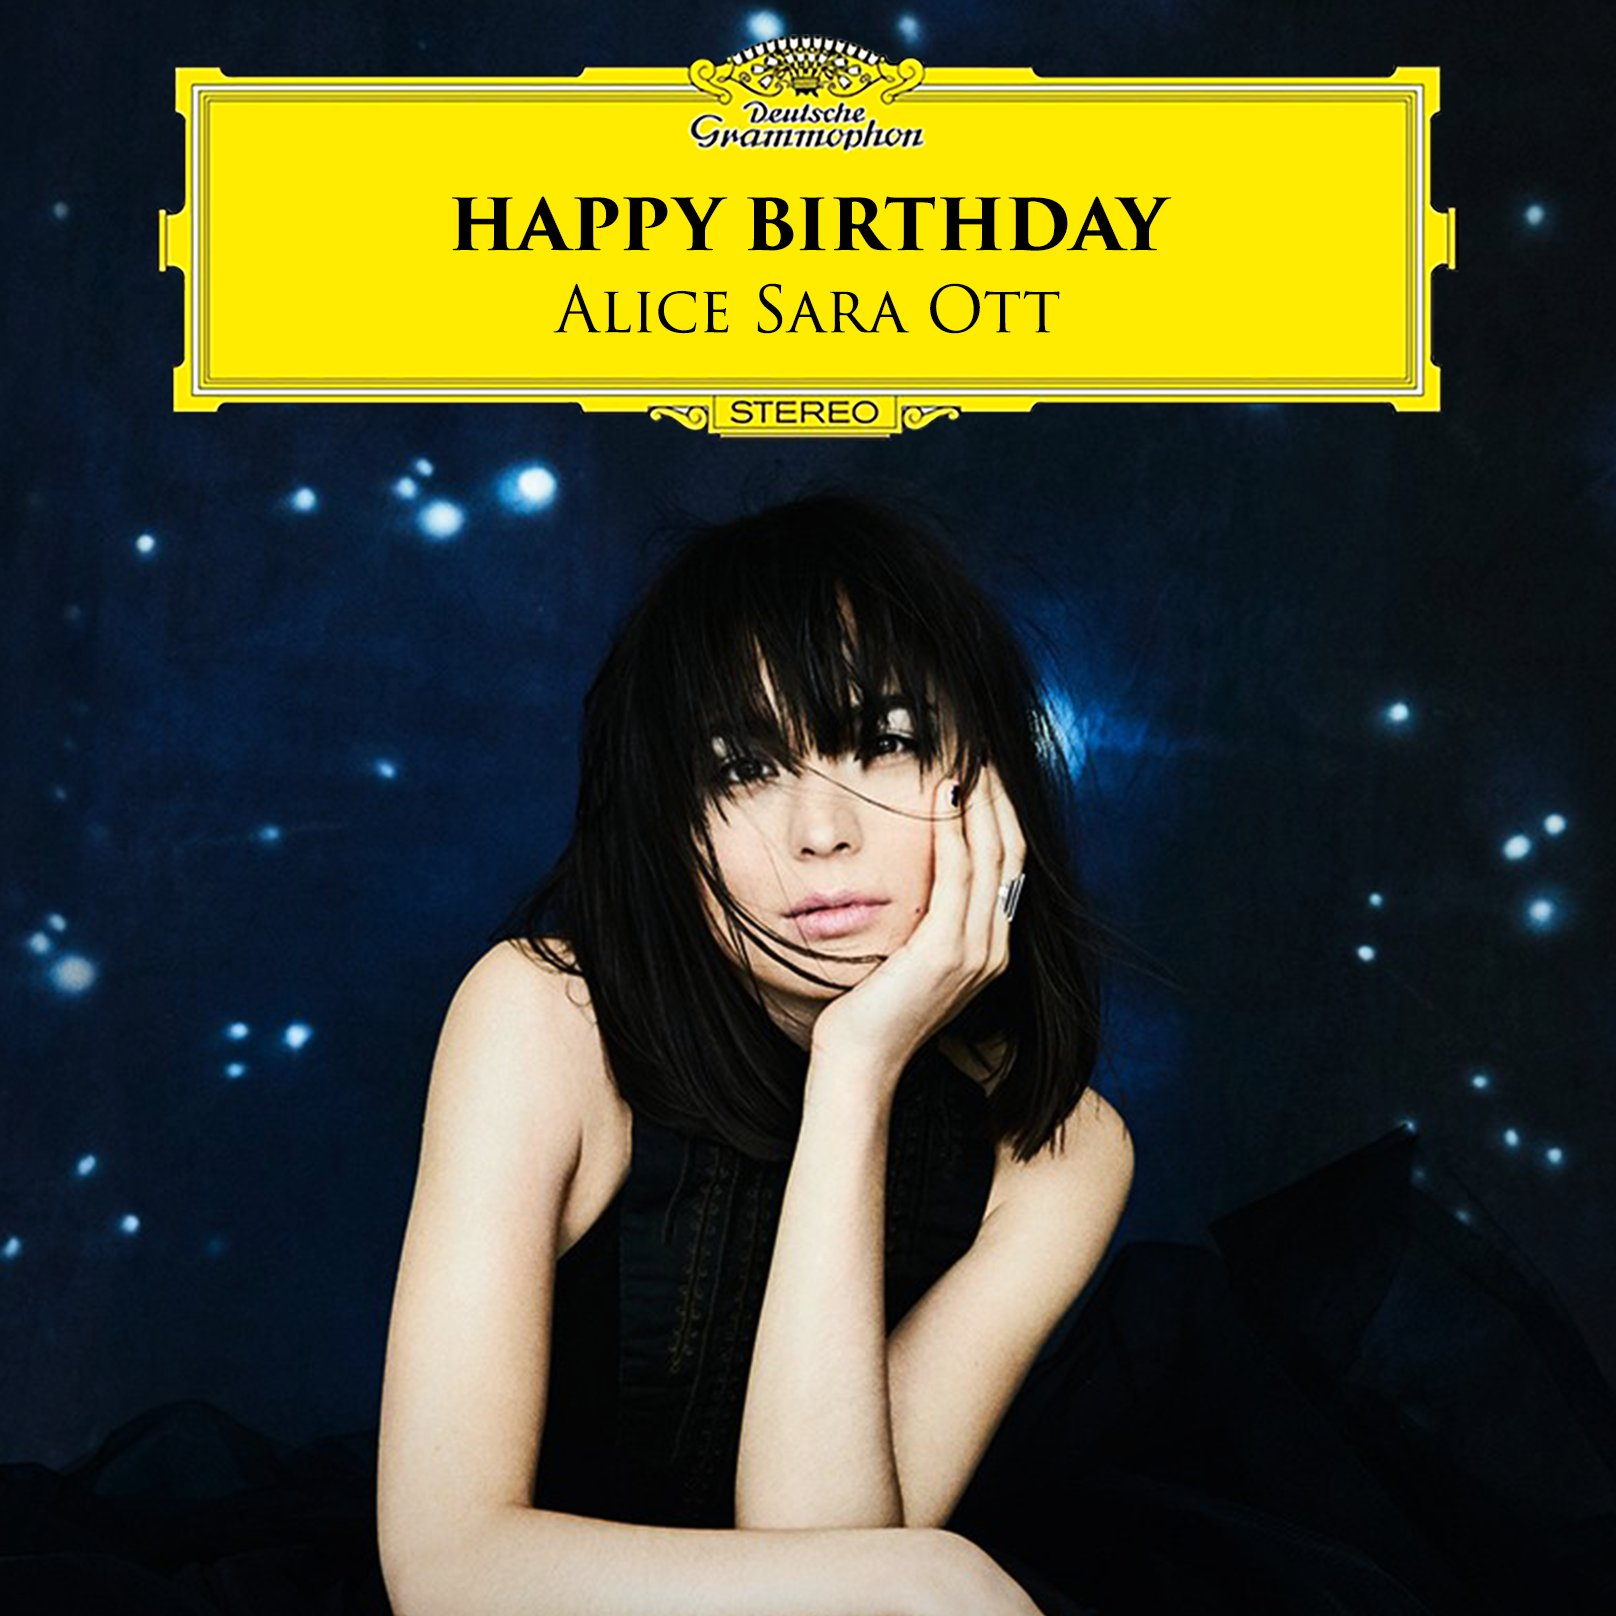 Reloaded twaddle – RT @DGclassics: Happy Birthday, @AliceSaraOtt! Marking the dual celebration of h...